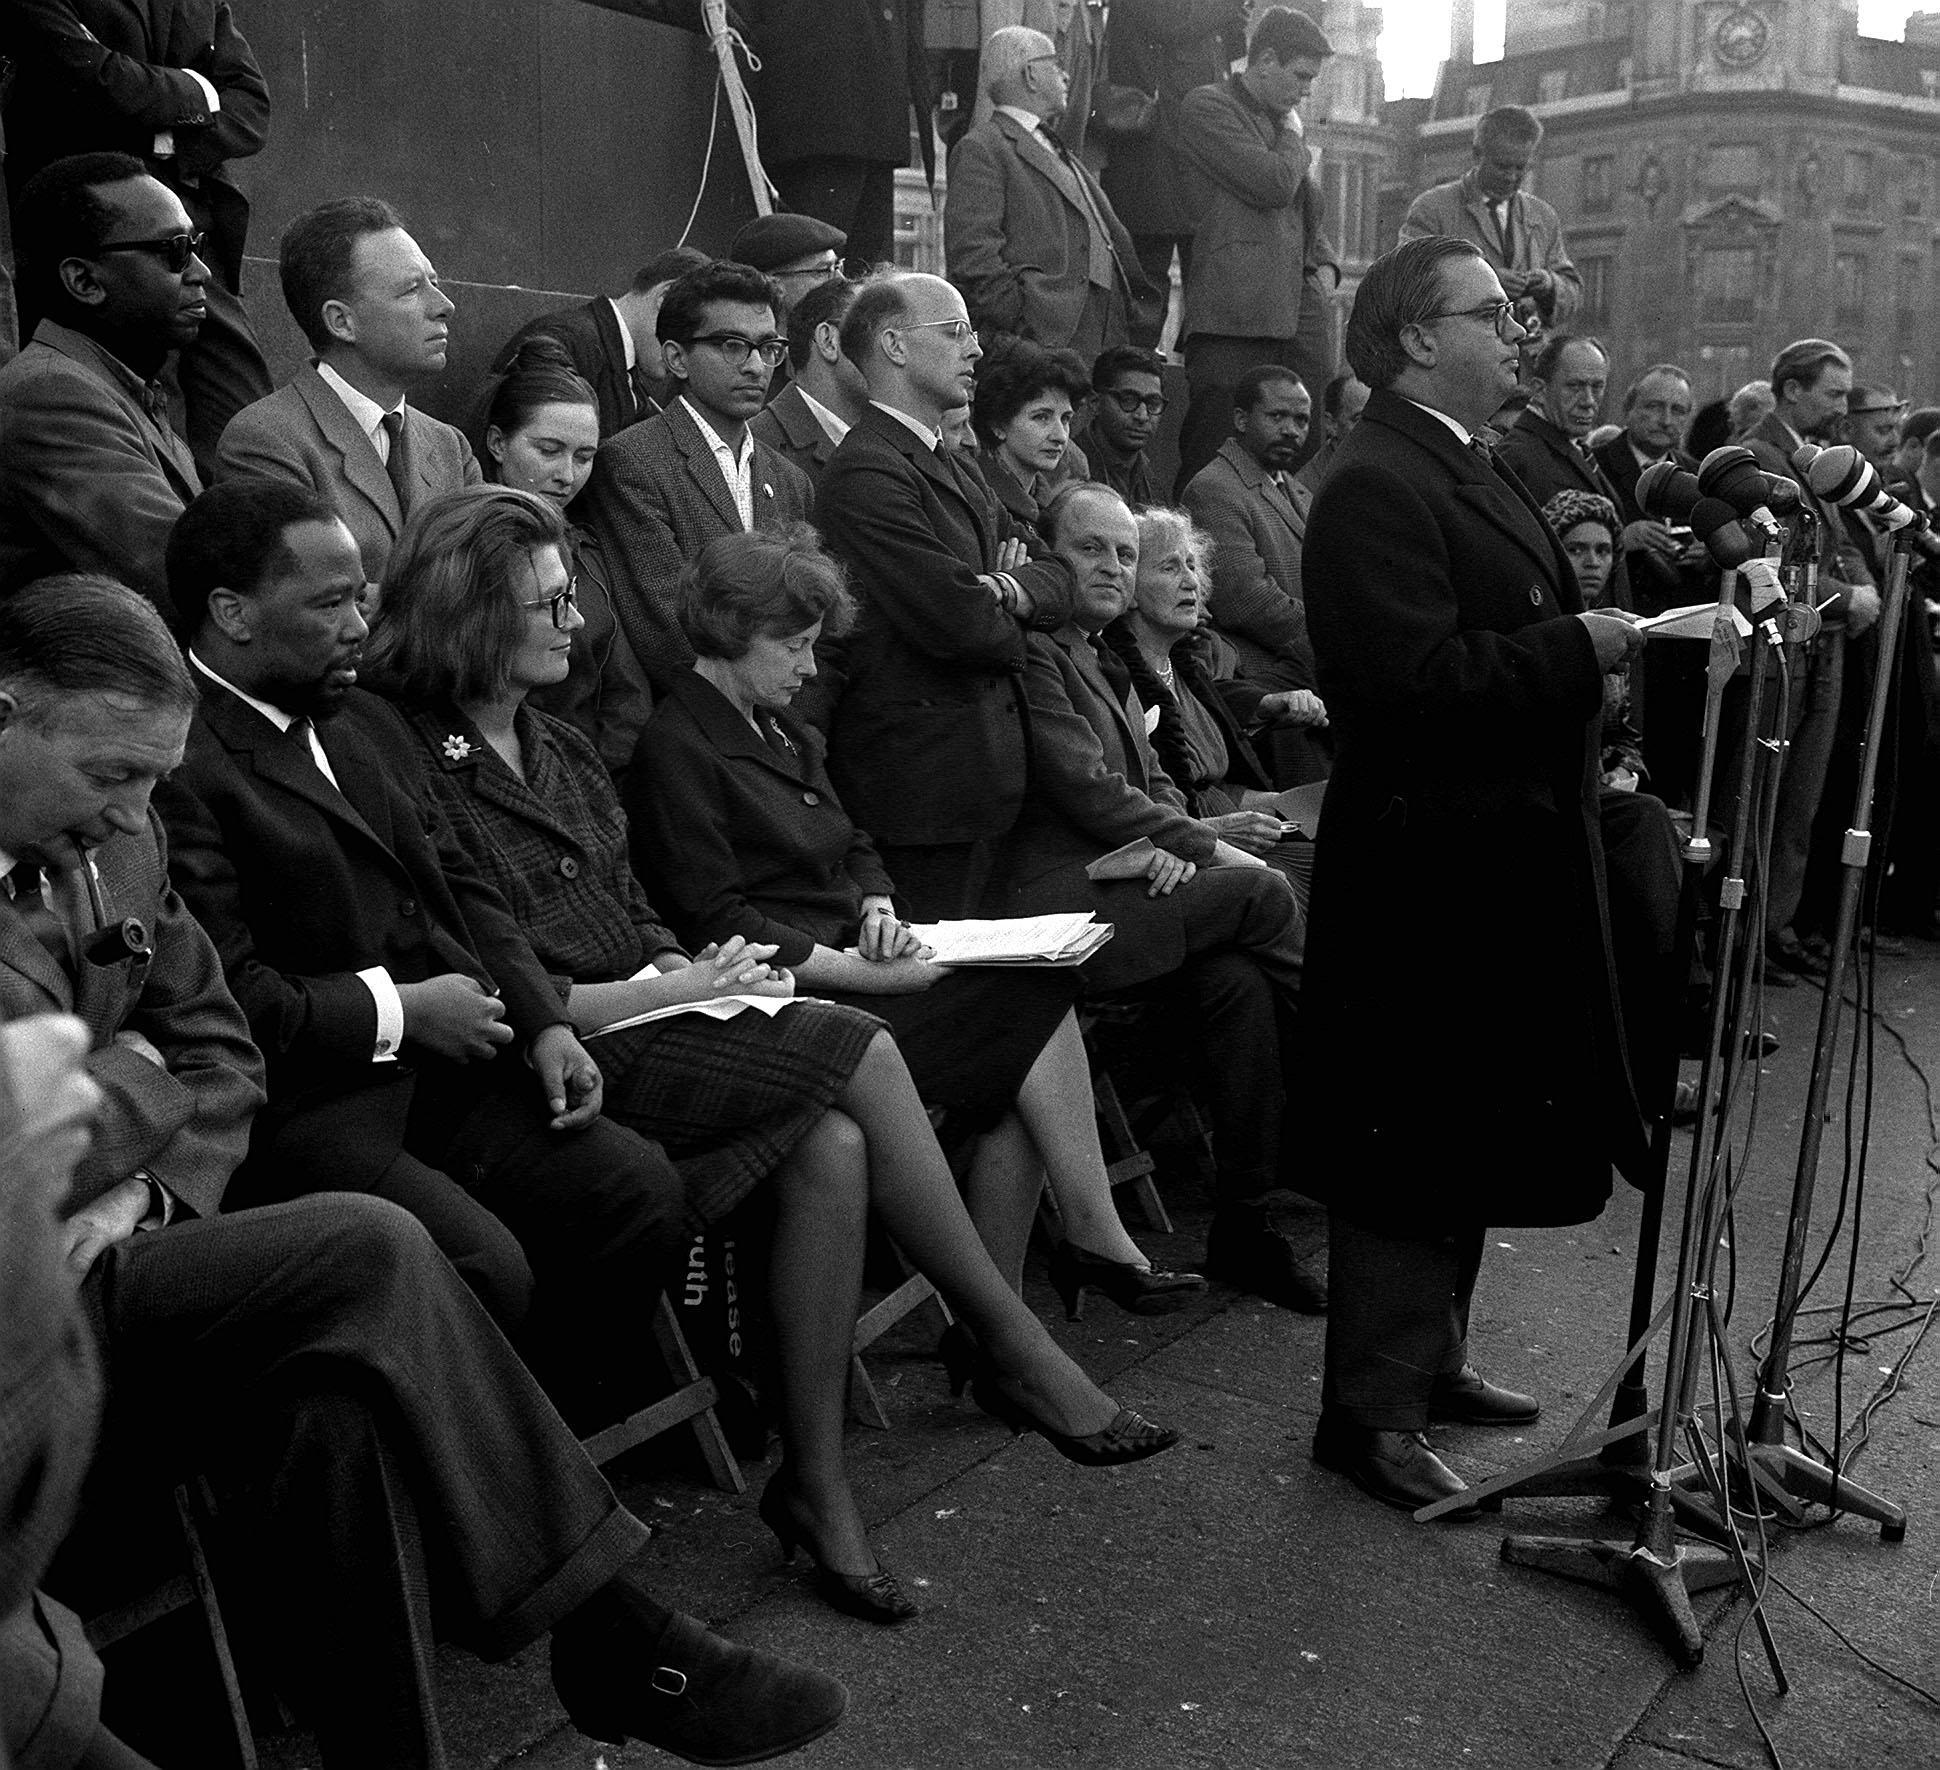 3/11/63  Woodrow Wyatt, Labour MP for Bosworth speaks from the plinth of Nelson's Column during the anti-apartheid movement meeting at Trafalgar Square following a march from Hyde Park.